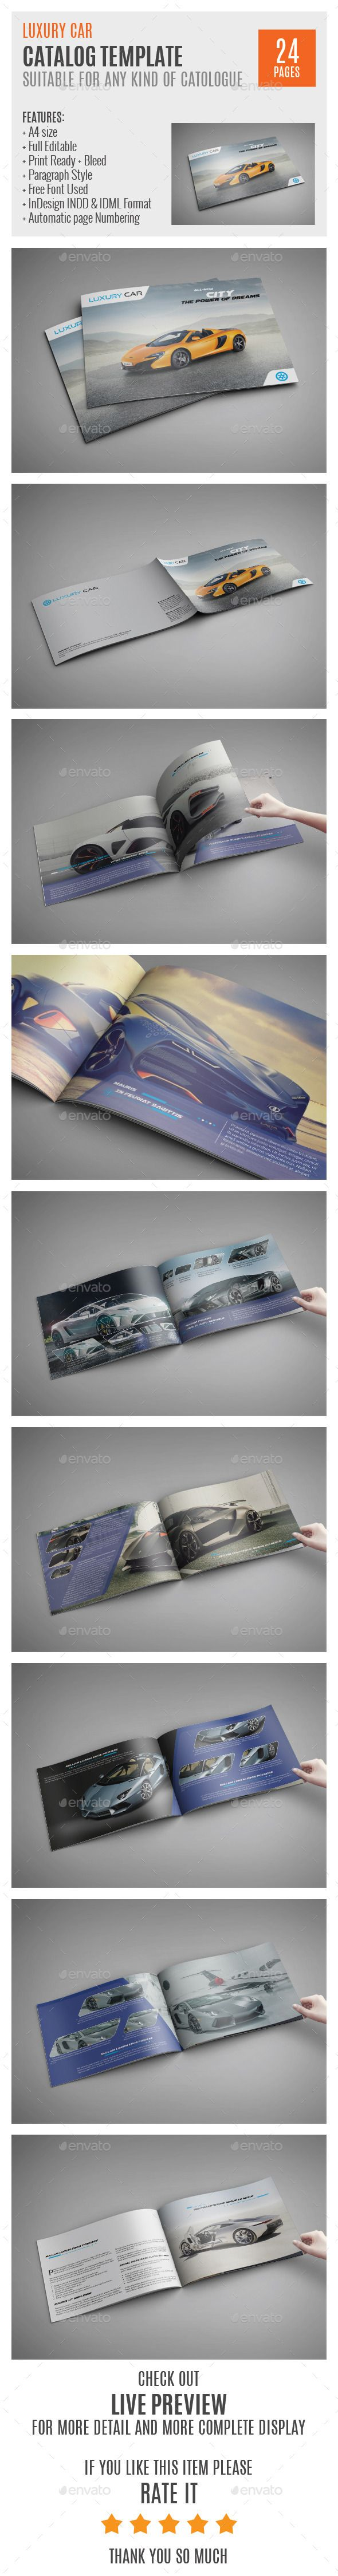 Luxury Car InDesign Catalog Template 0021 | Luxury cars, Template ...